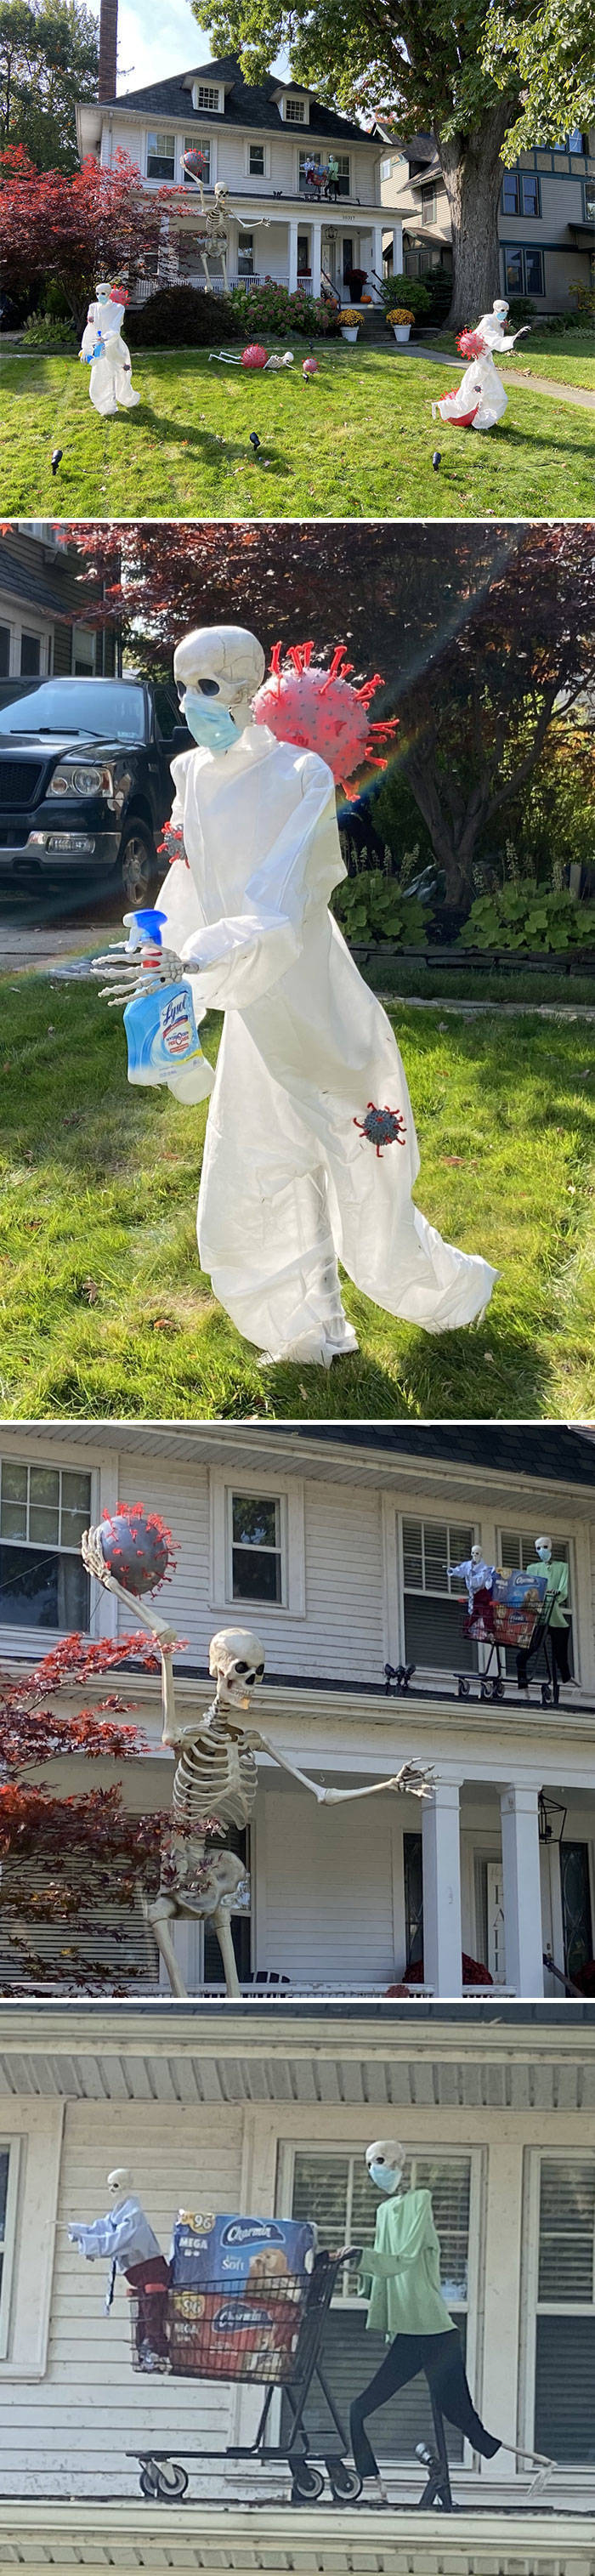 These Halloween Decorations Are Rather Scary…